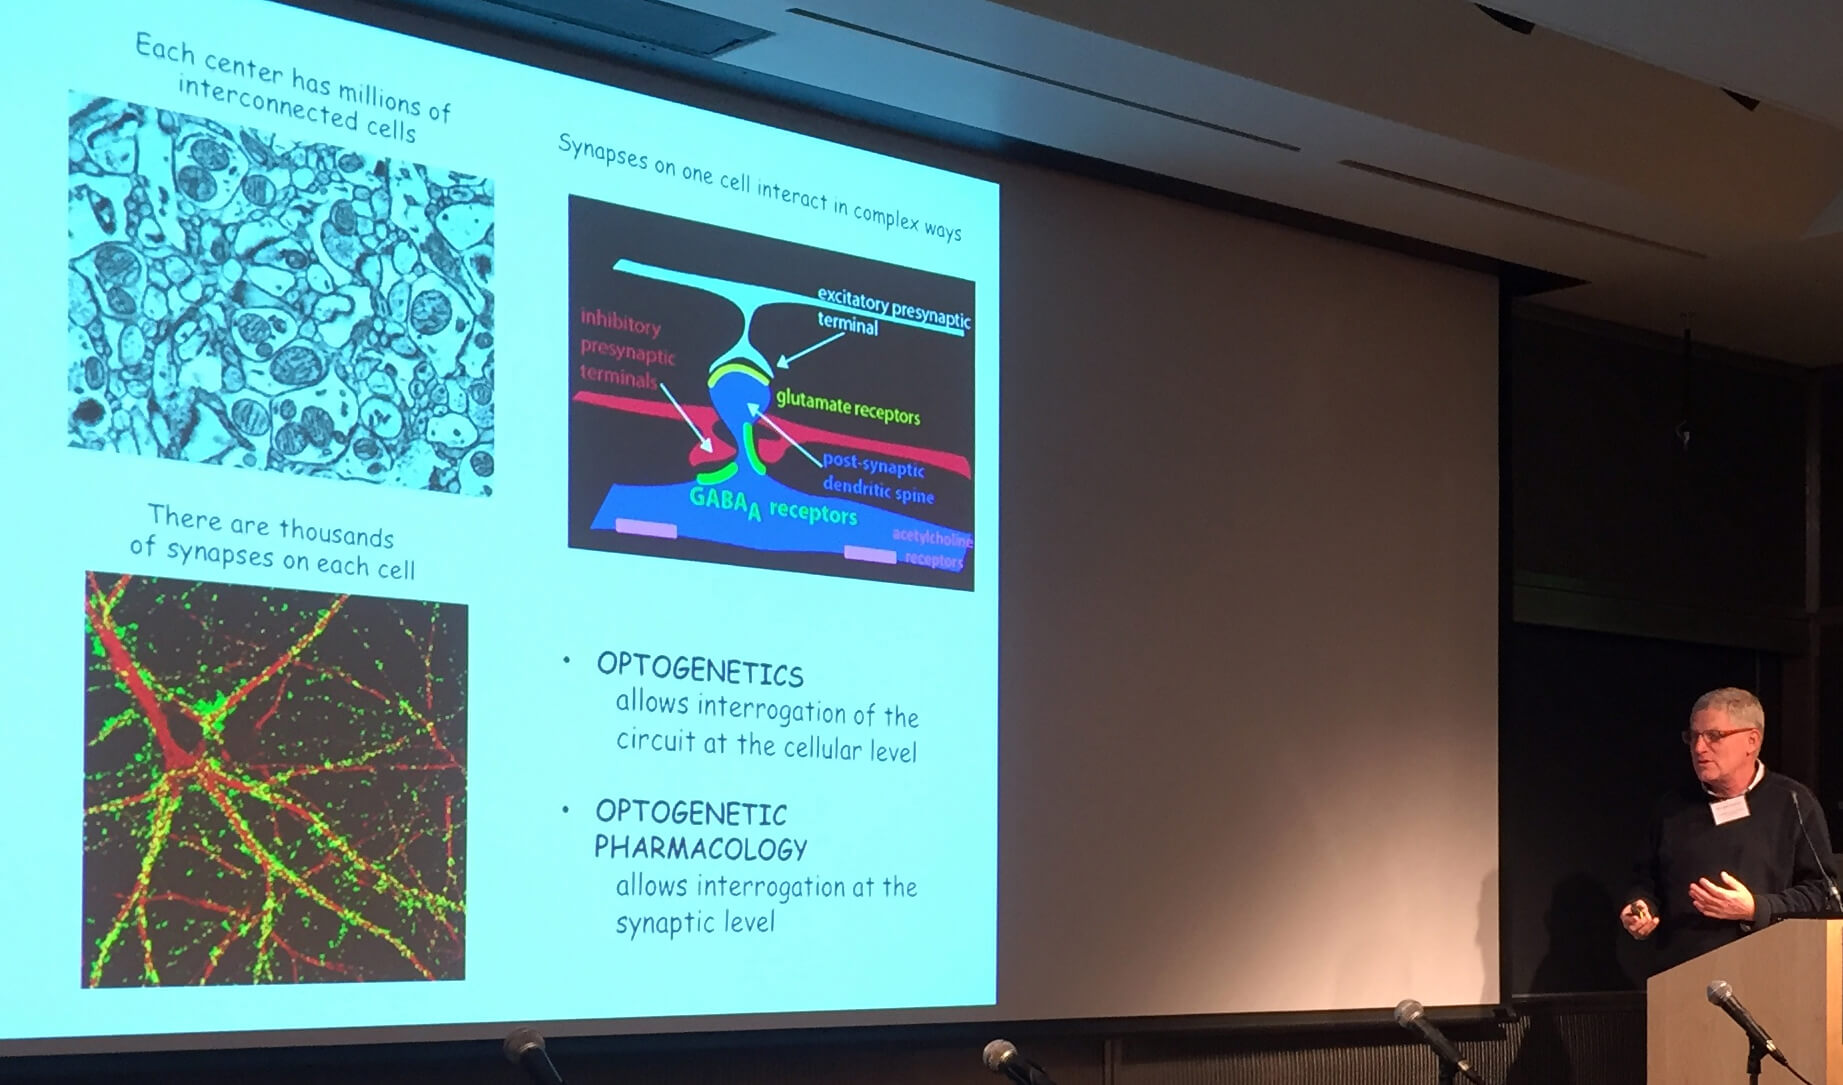 Richard Kramer talking about light-activated antagonists (optogenetic pharmacology) at BayBRAIN Industry Day, November 2015.